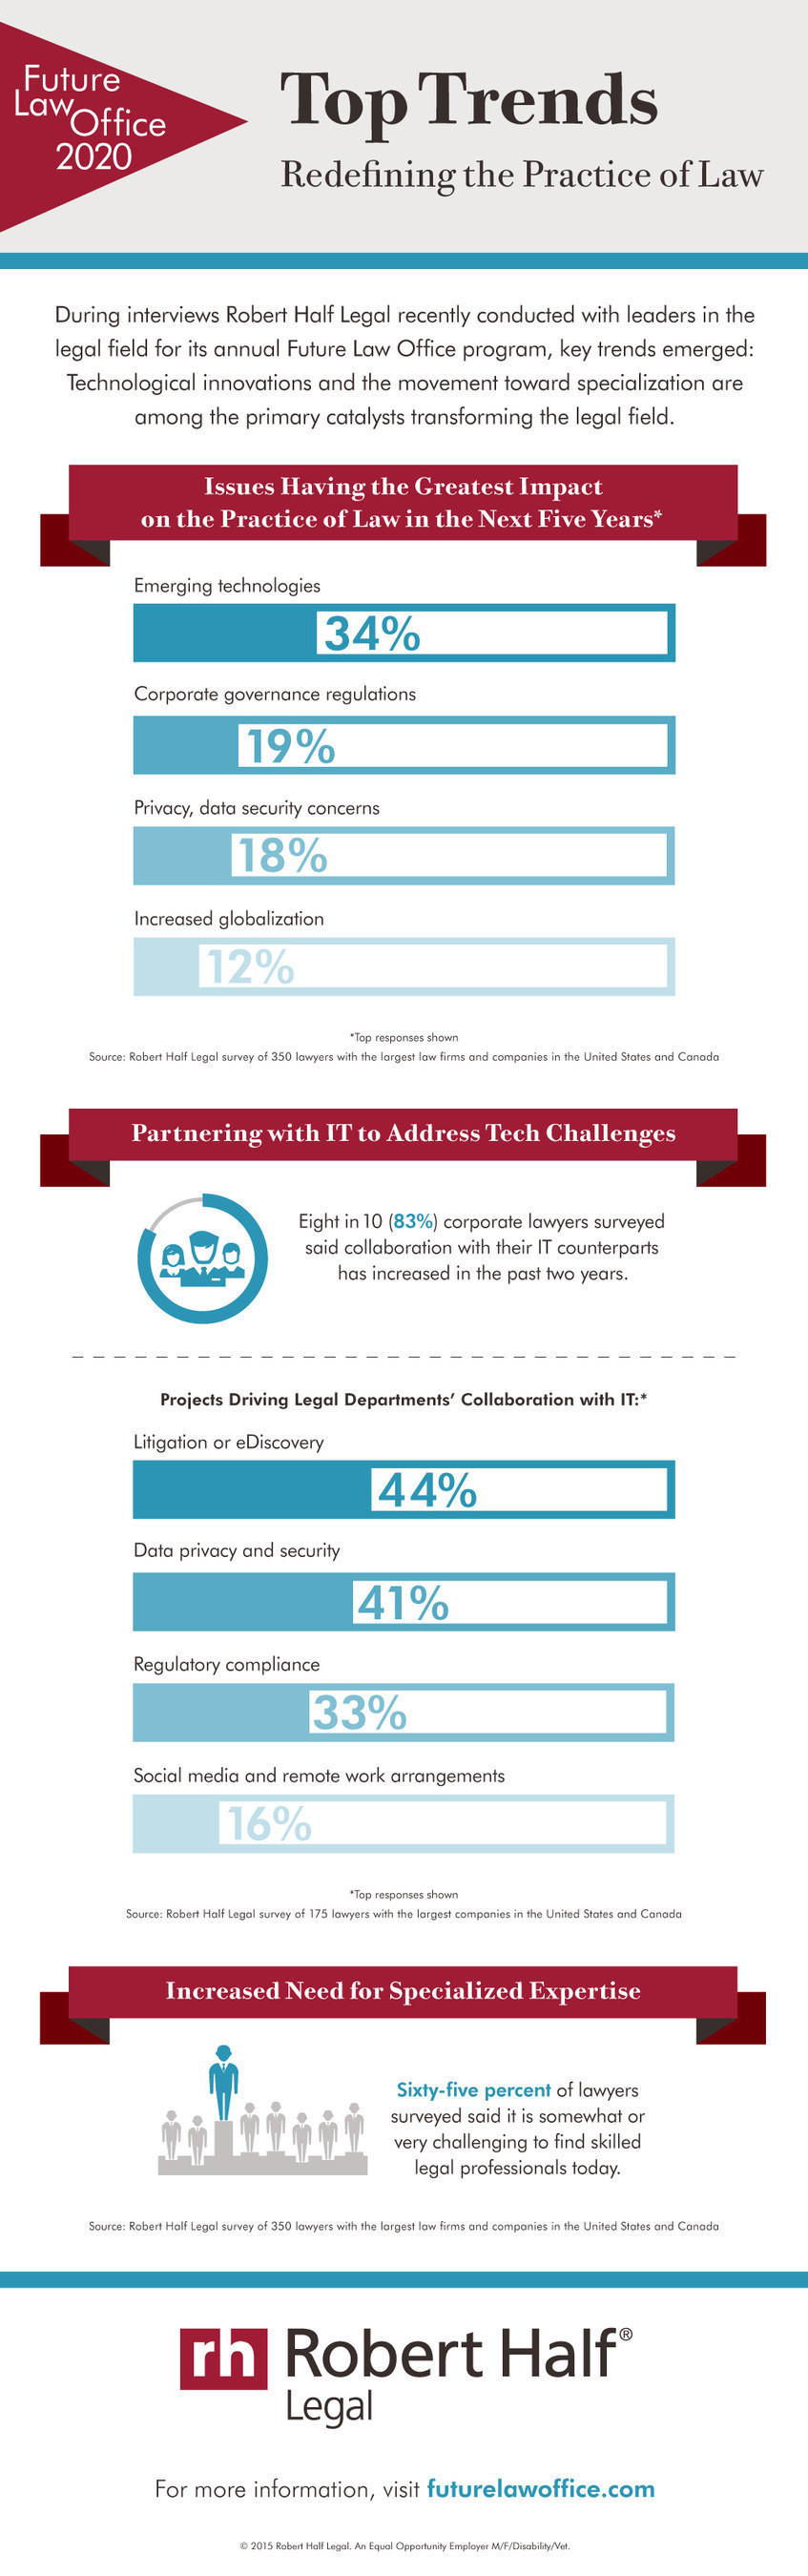 Top trends redefining the practice of law